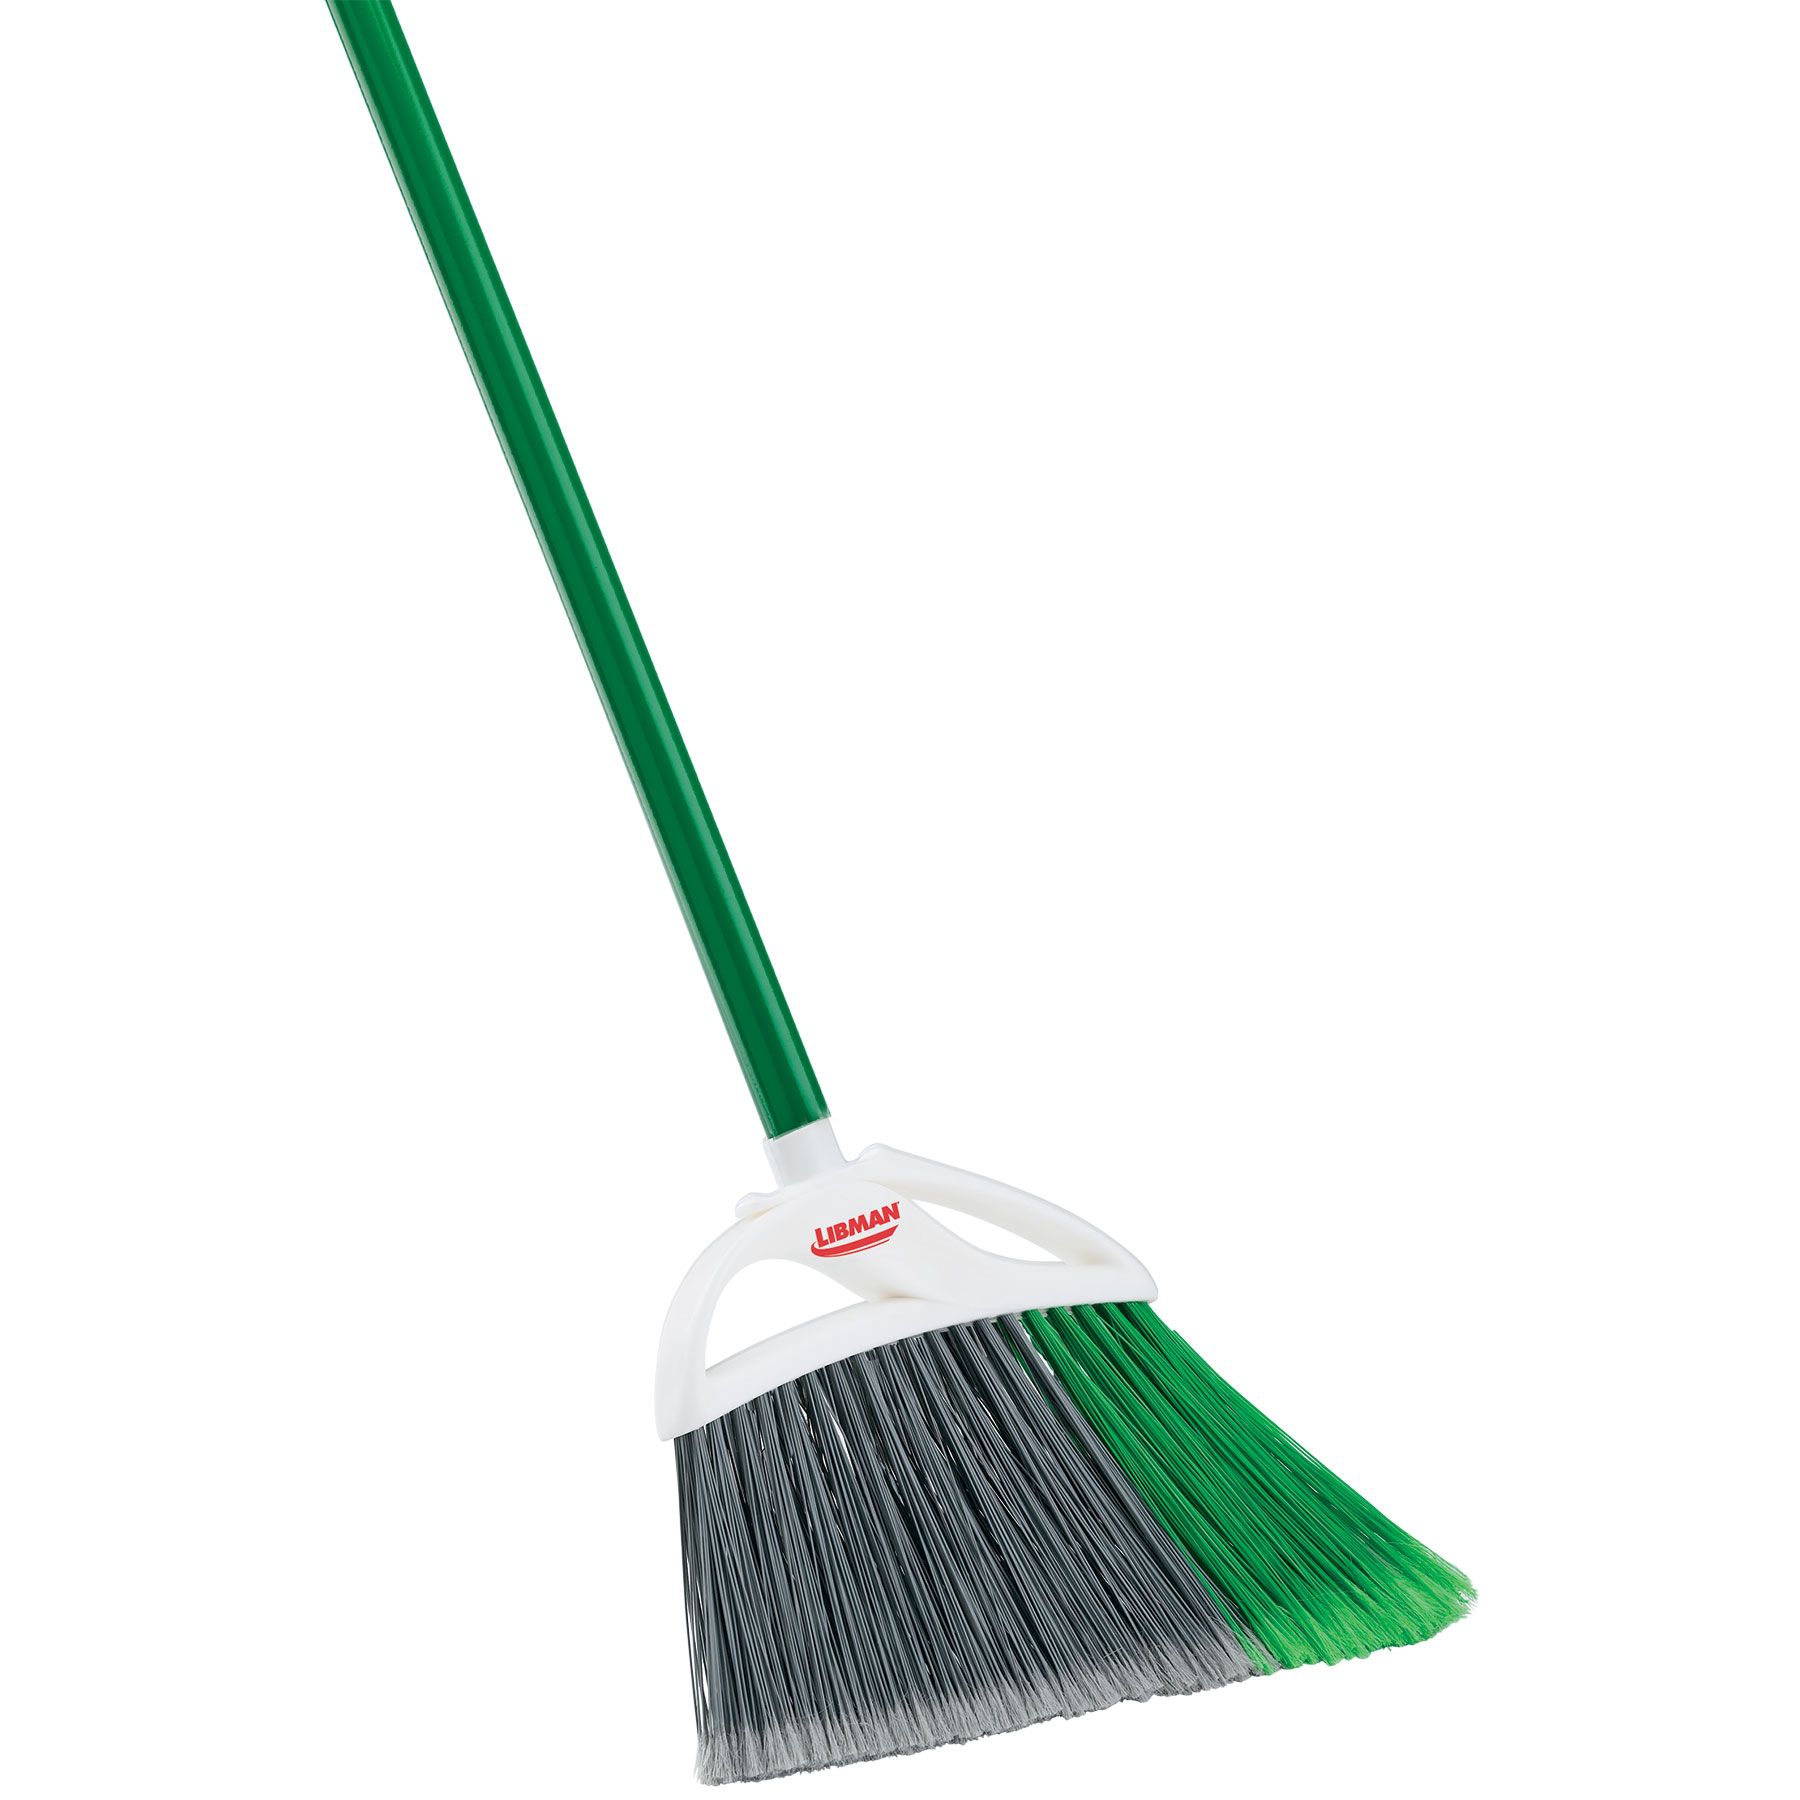 Libman  Large Precision Angle Broom, 1 broom